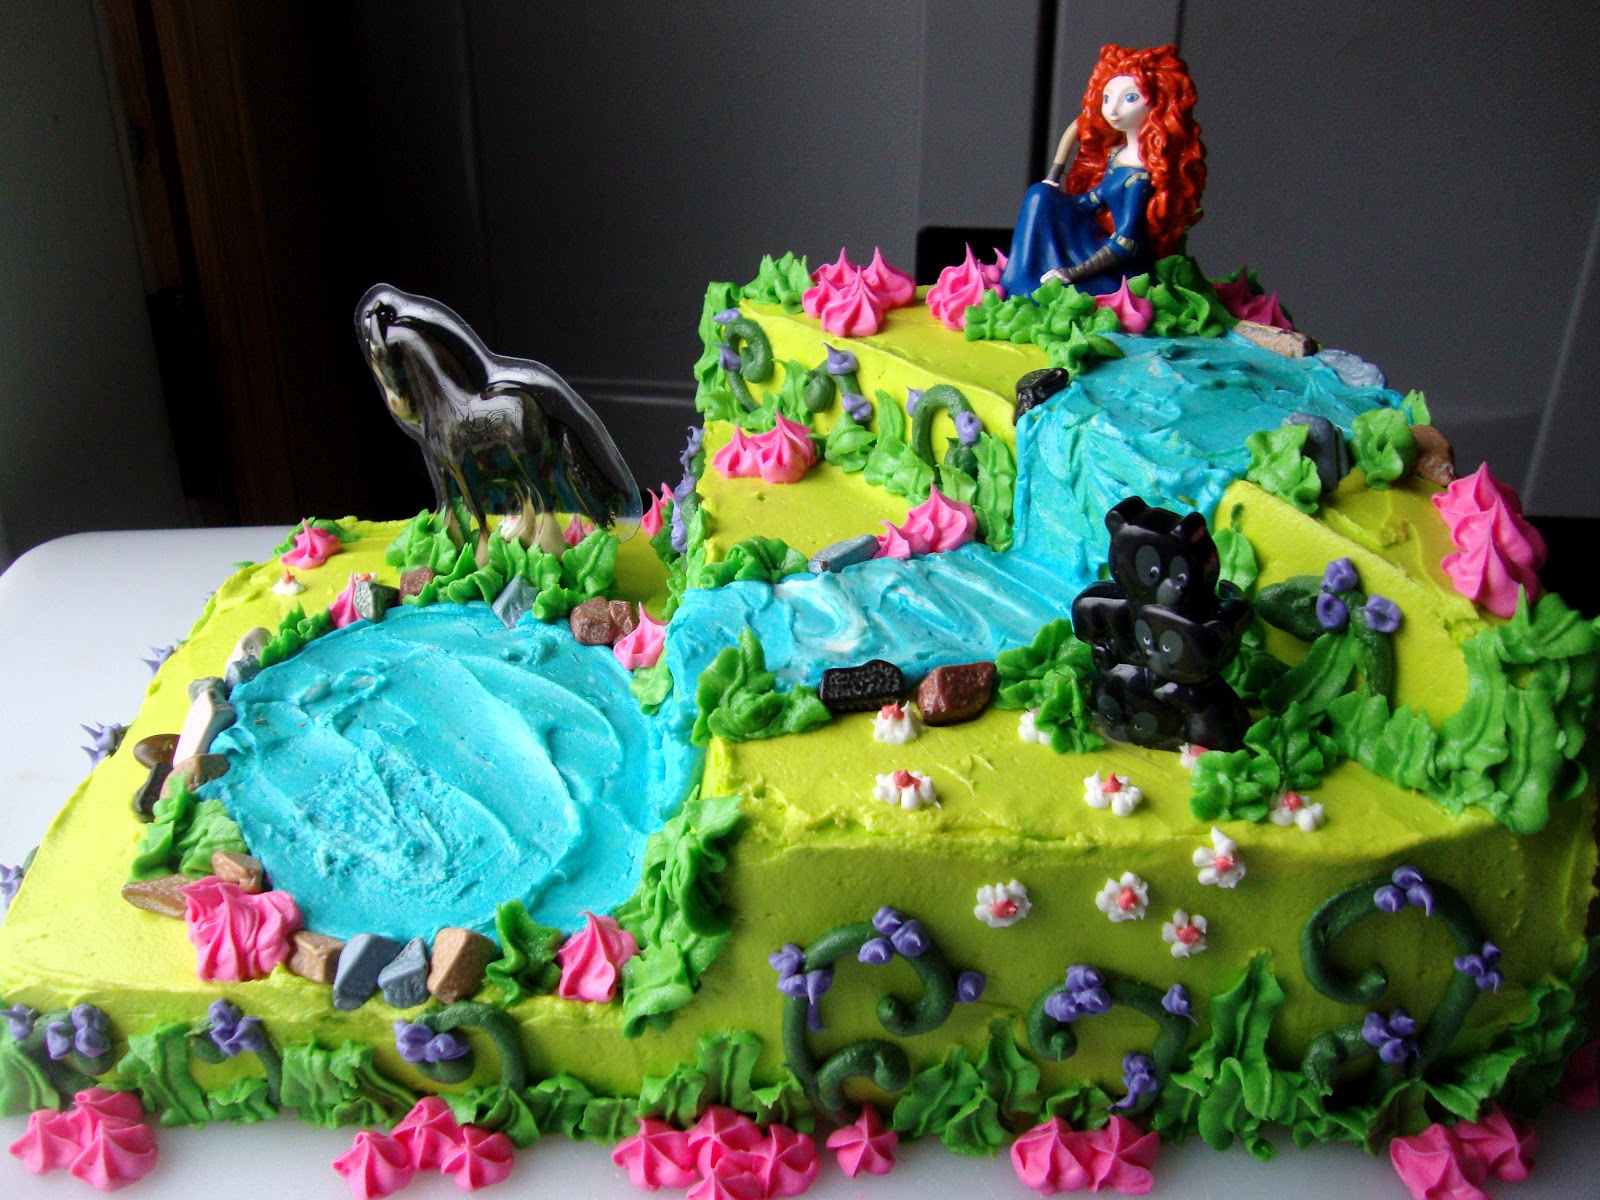 Cakes And Cookies Are You Brave Enough To Eat This Cake